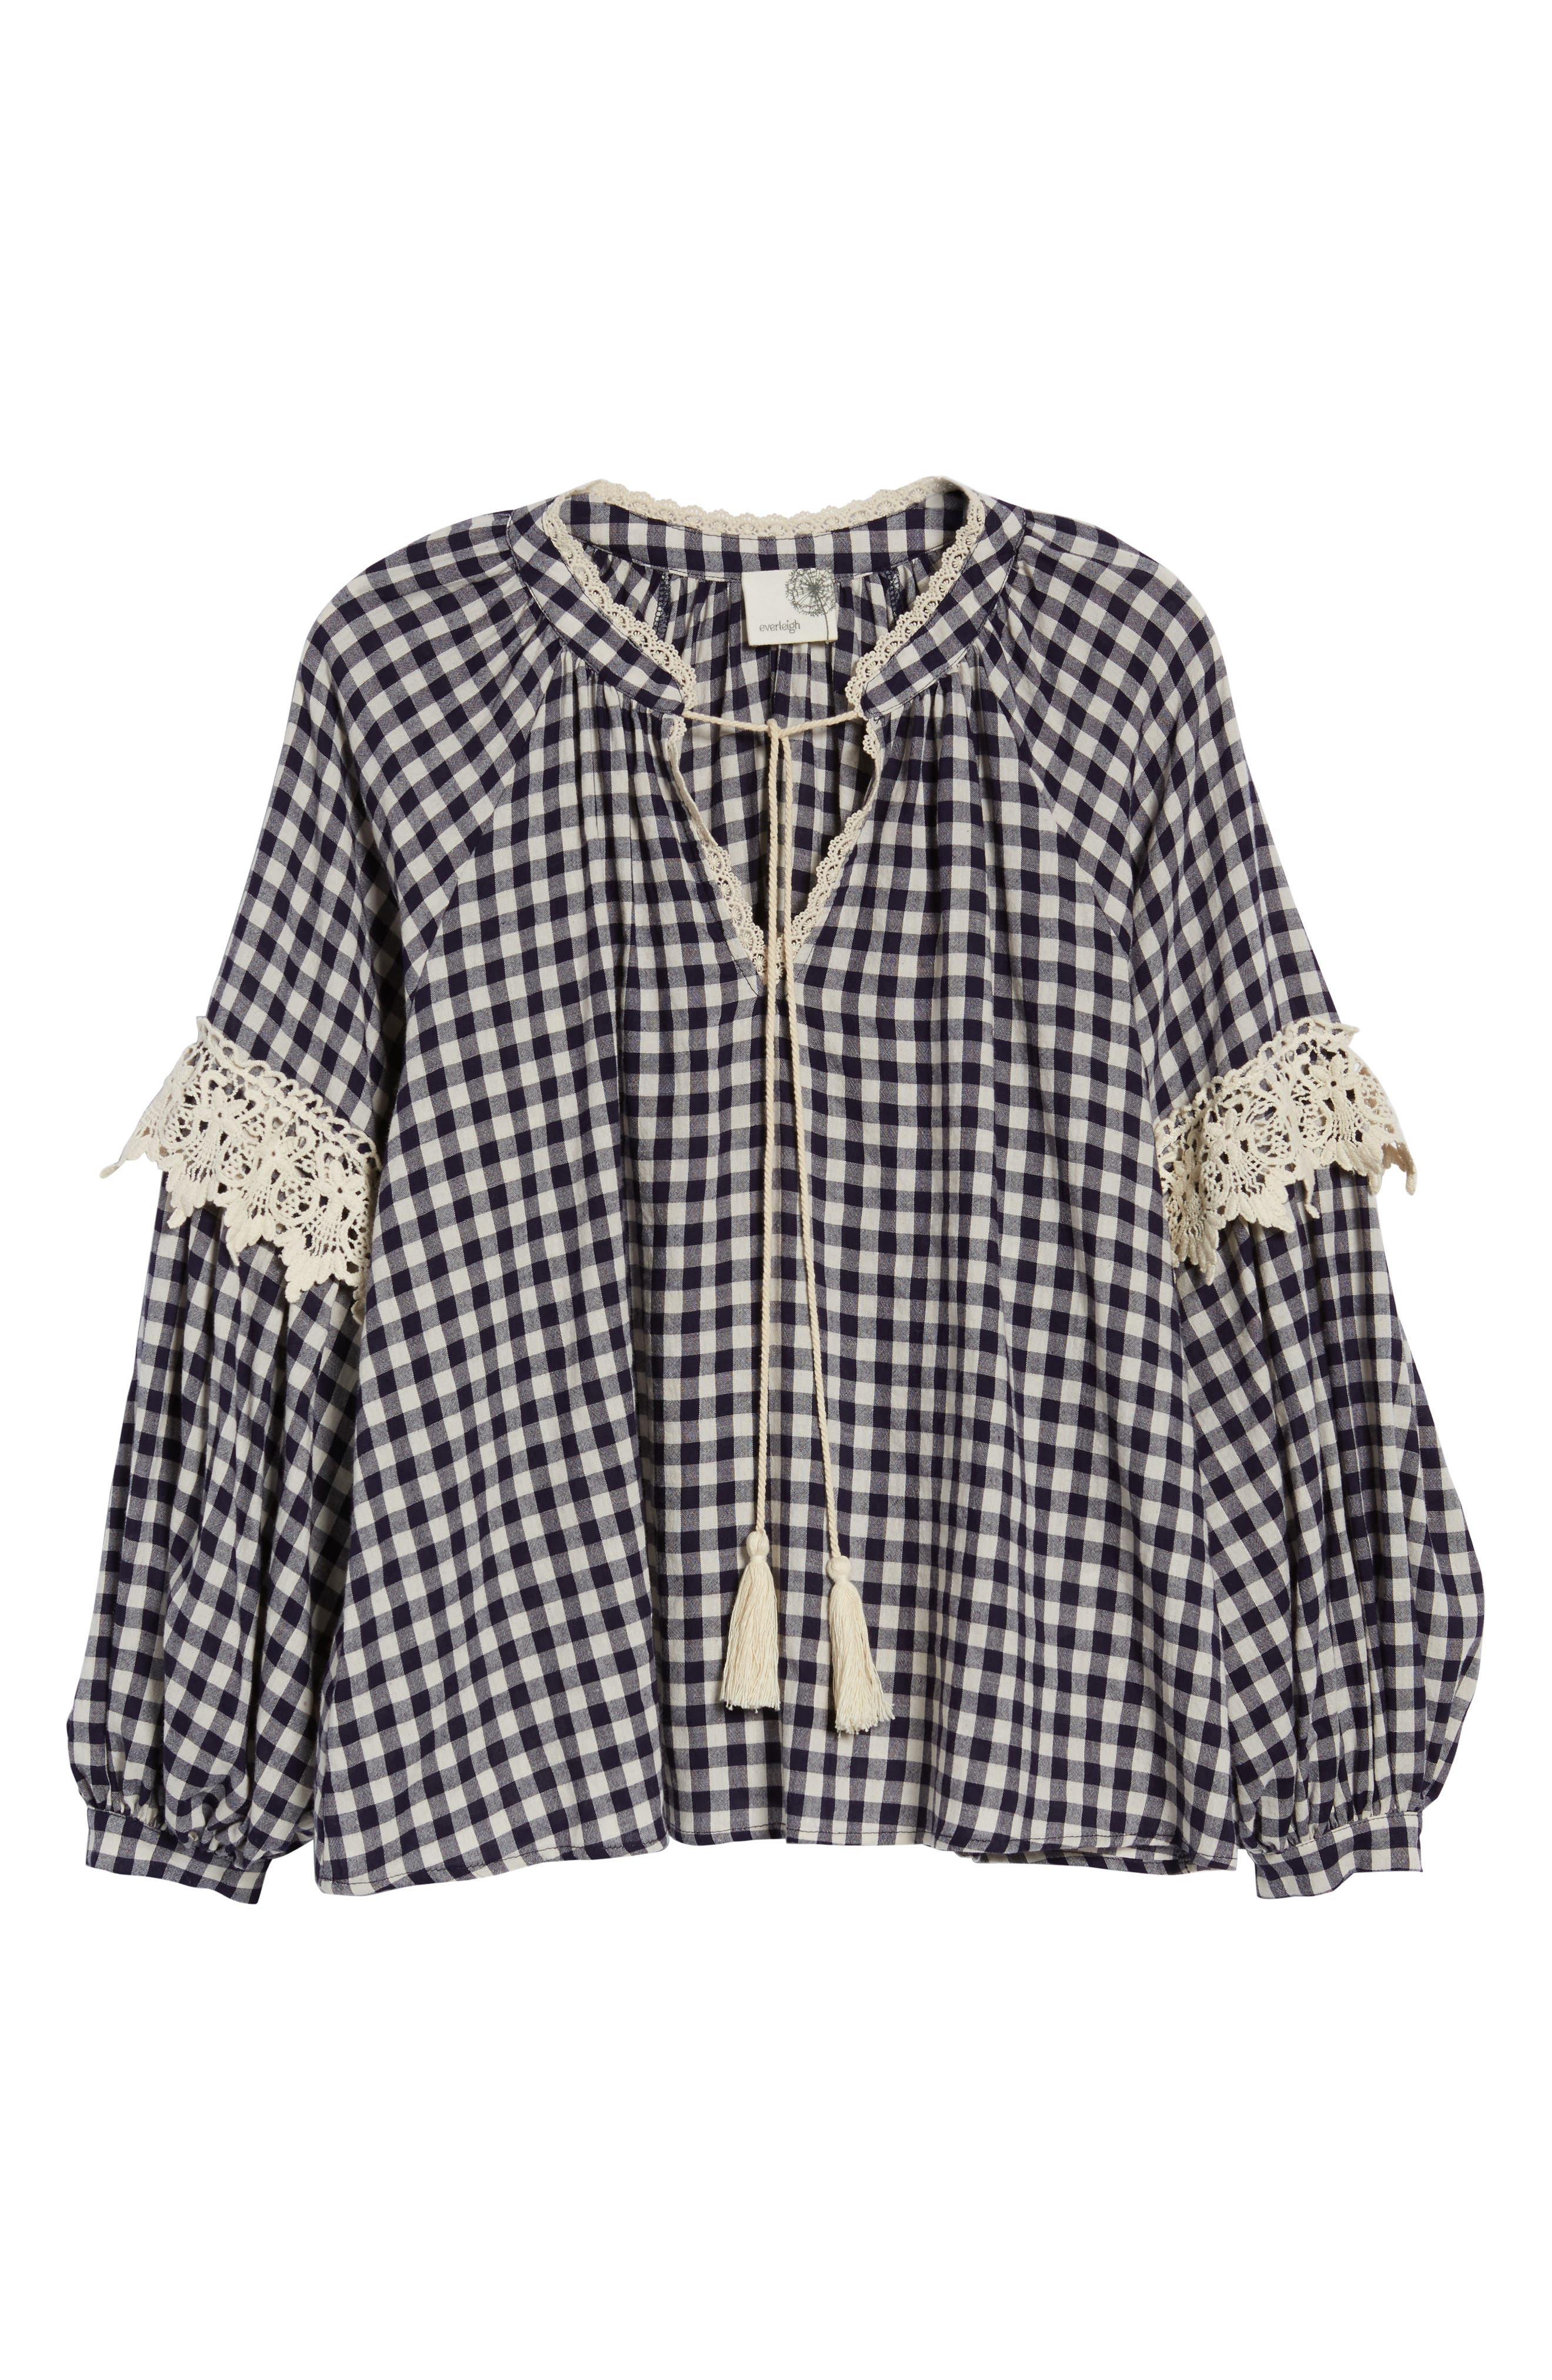 Gingham Check Peasant Top,                             Alternate thumbnail 7, color,                             Navy White Gingham